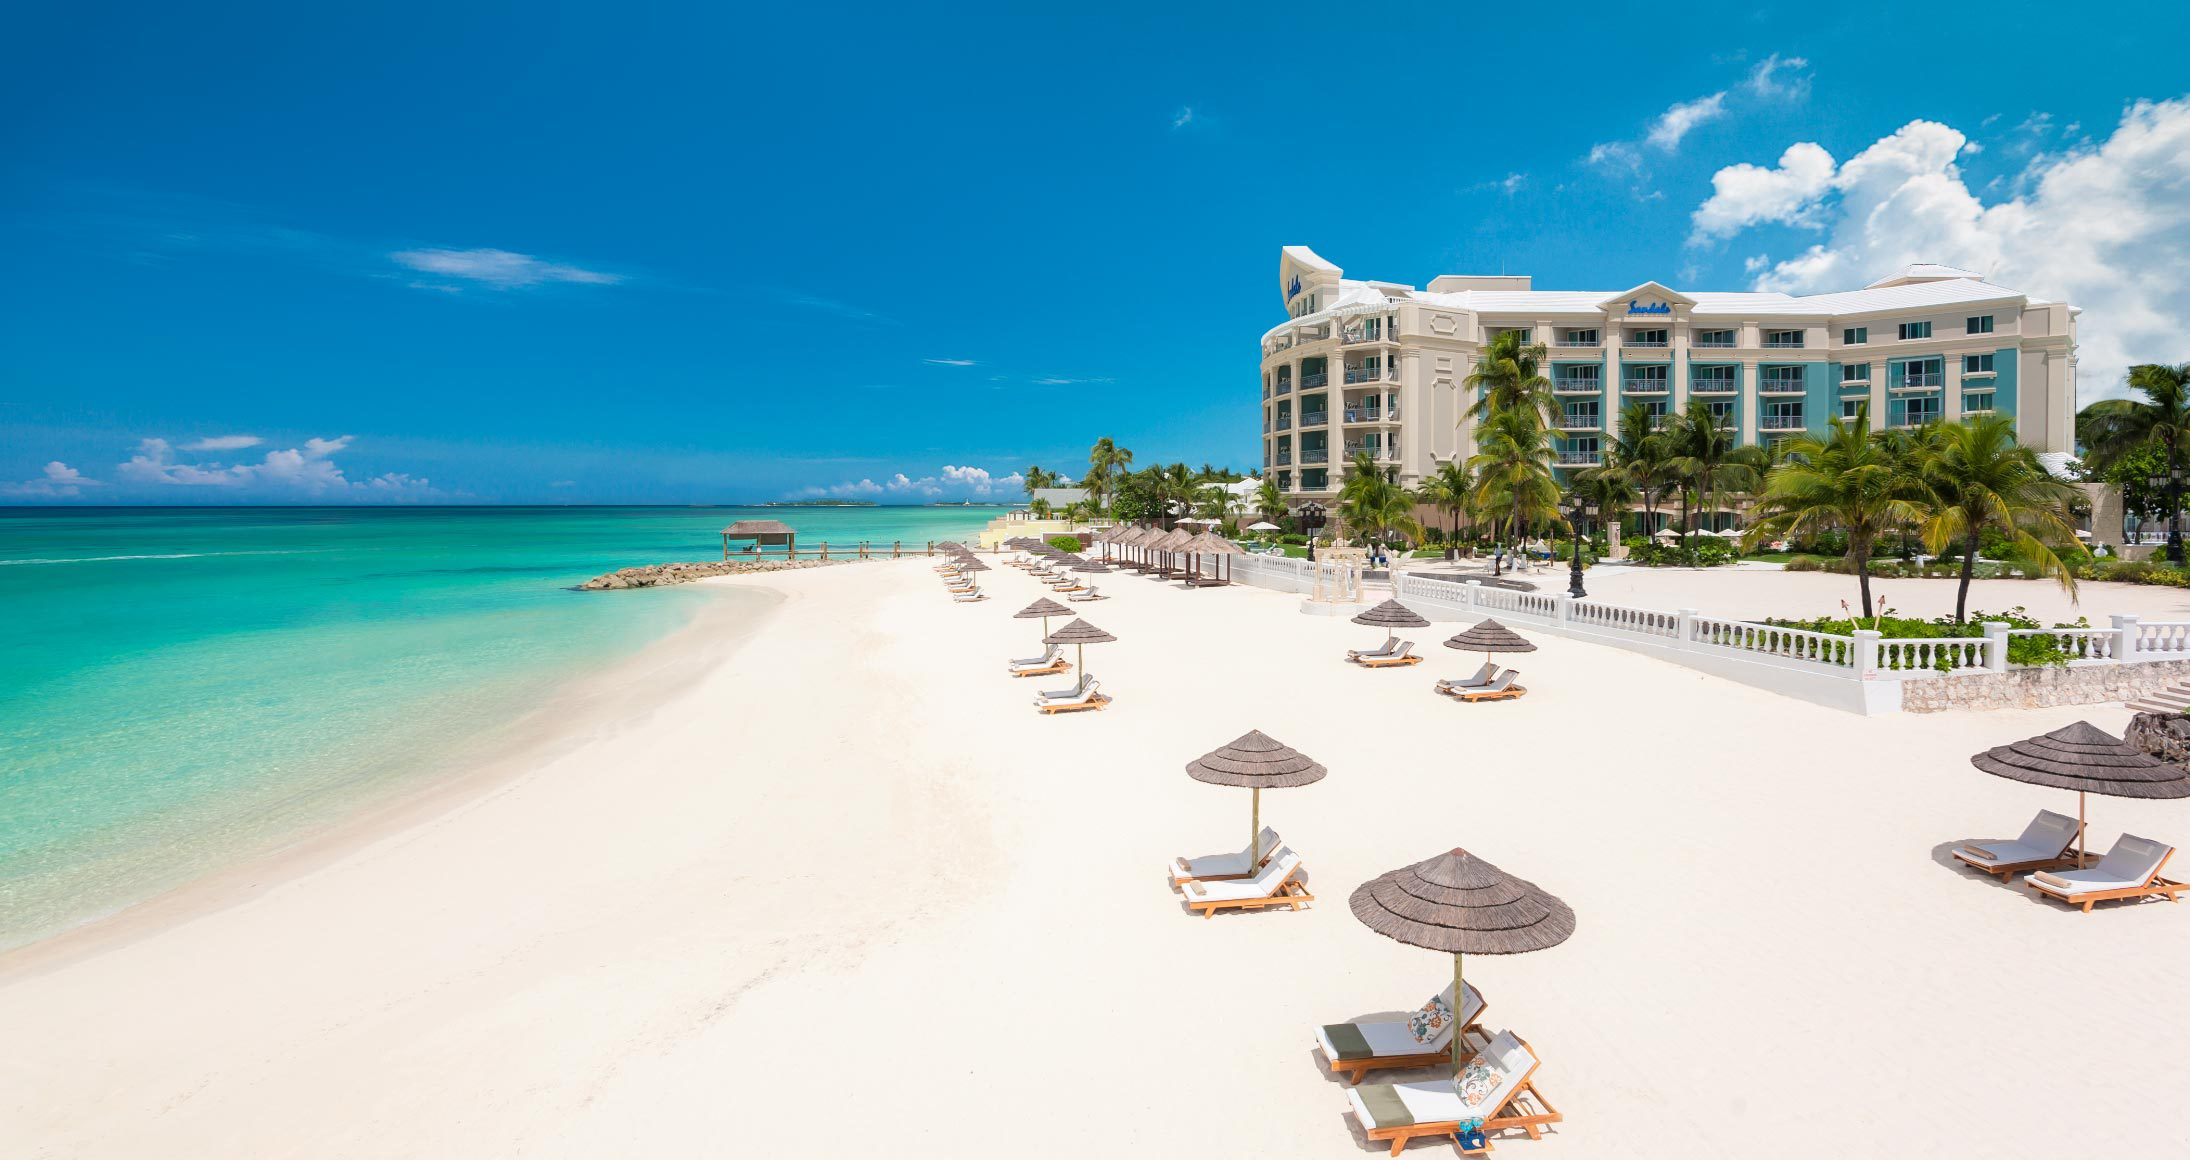 Sandals experiences 'shift' in booking patterns